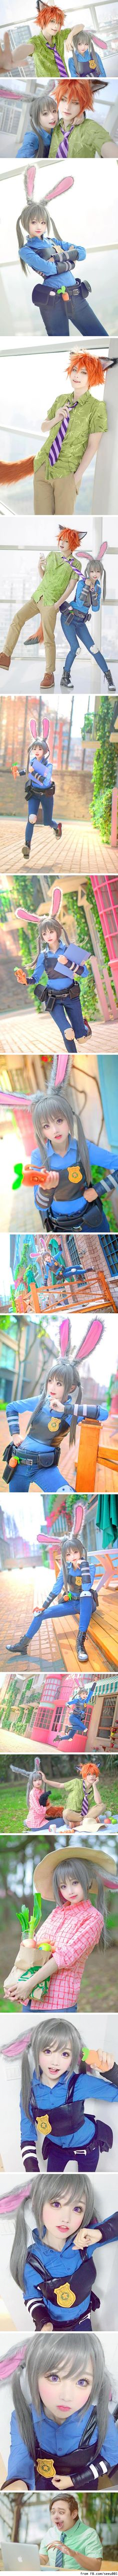 Zootopia cosplay by SeeU and friends